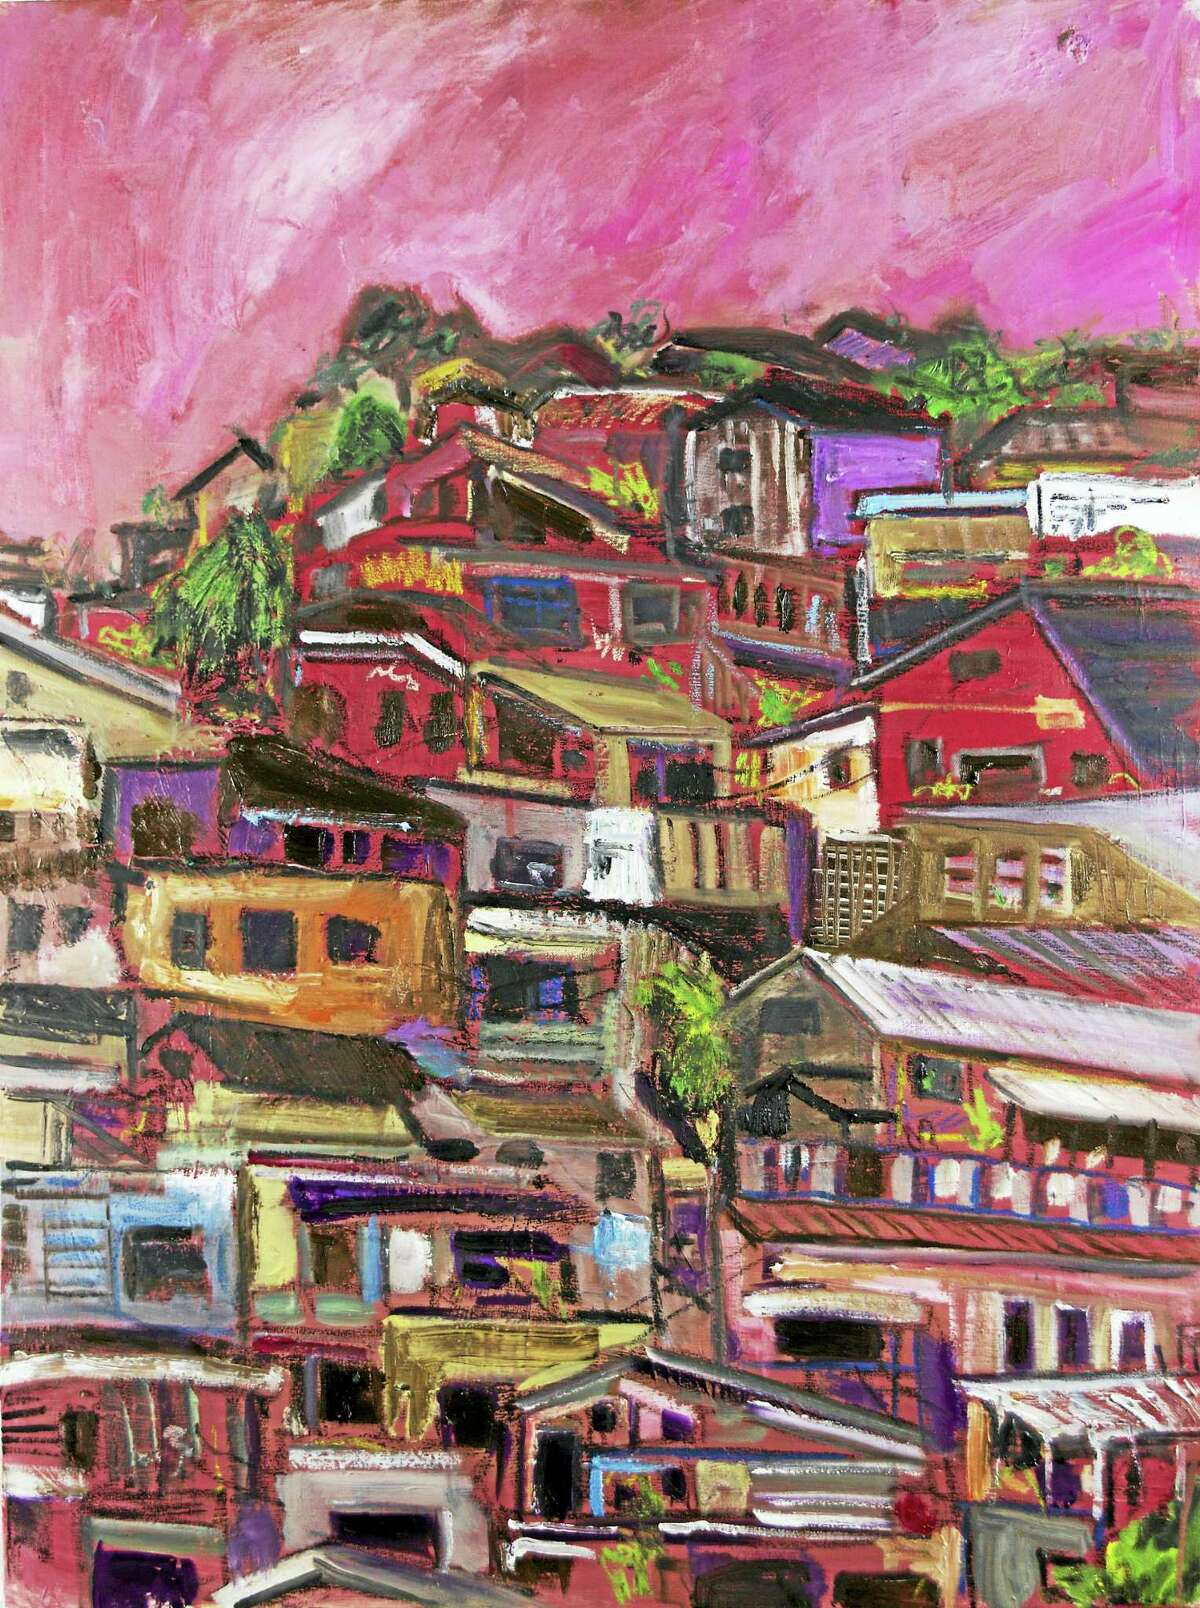 Works by artist Zeb Mayer will be shown at Serendipity Gallery in Litchfield, with an opening reception on March 18.